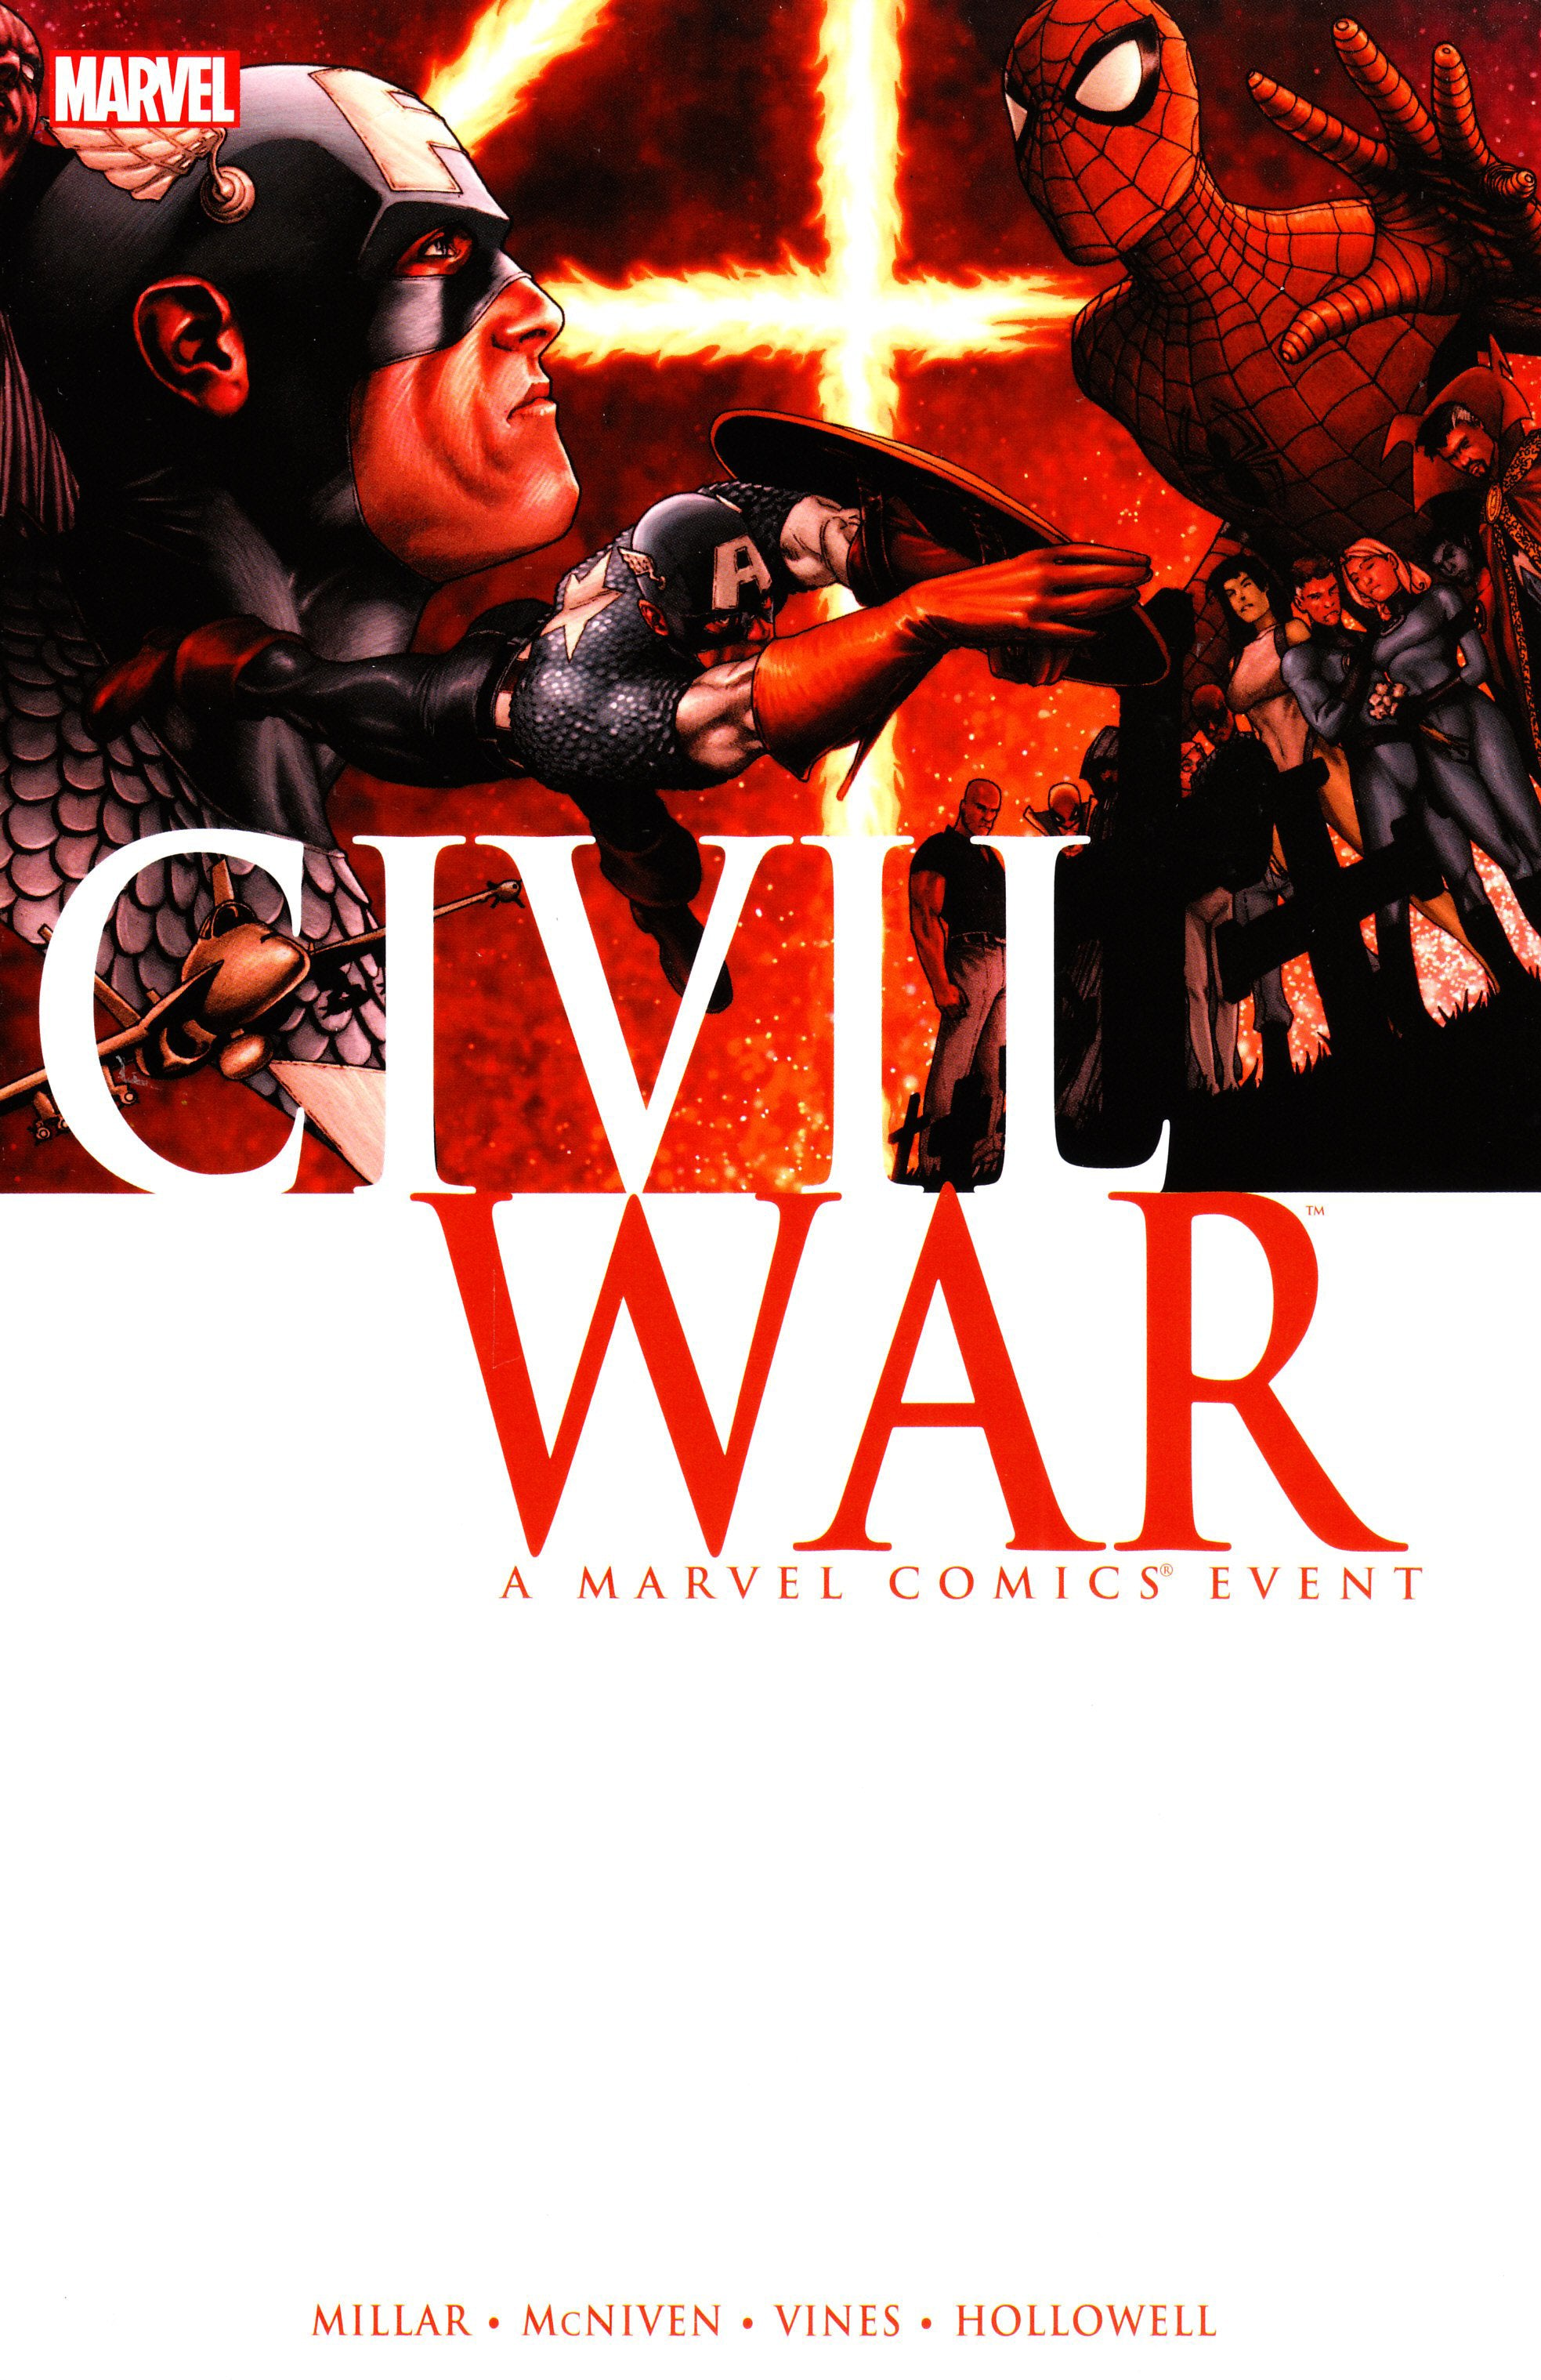 CIVIL WAR TP | Game Master's Emporium (The New GME)